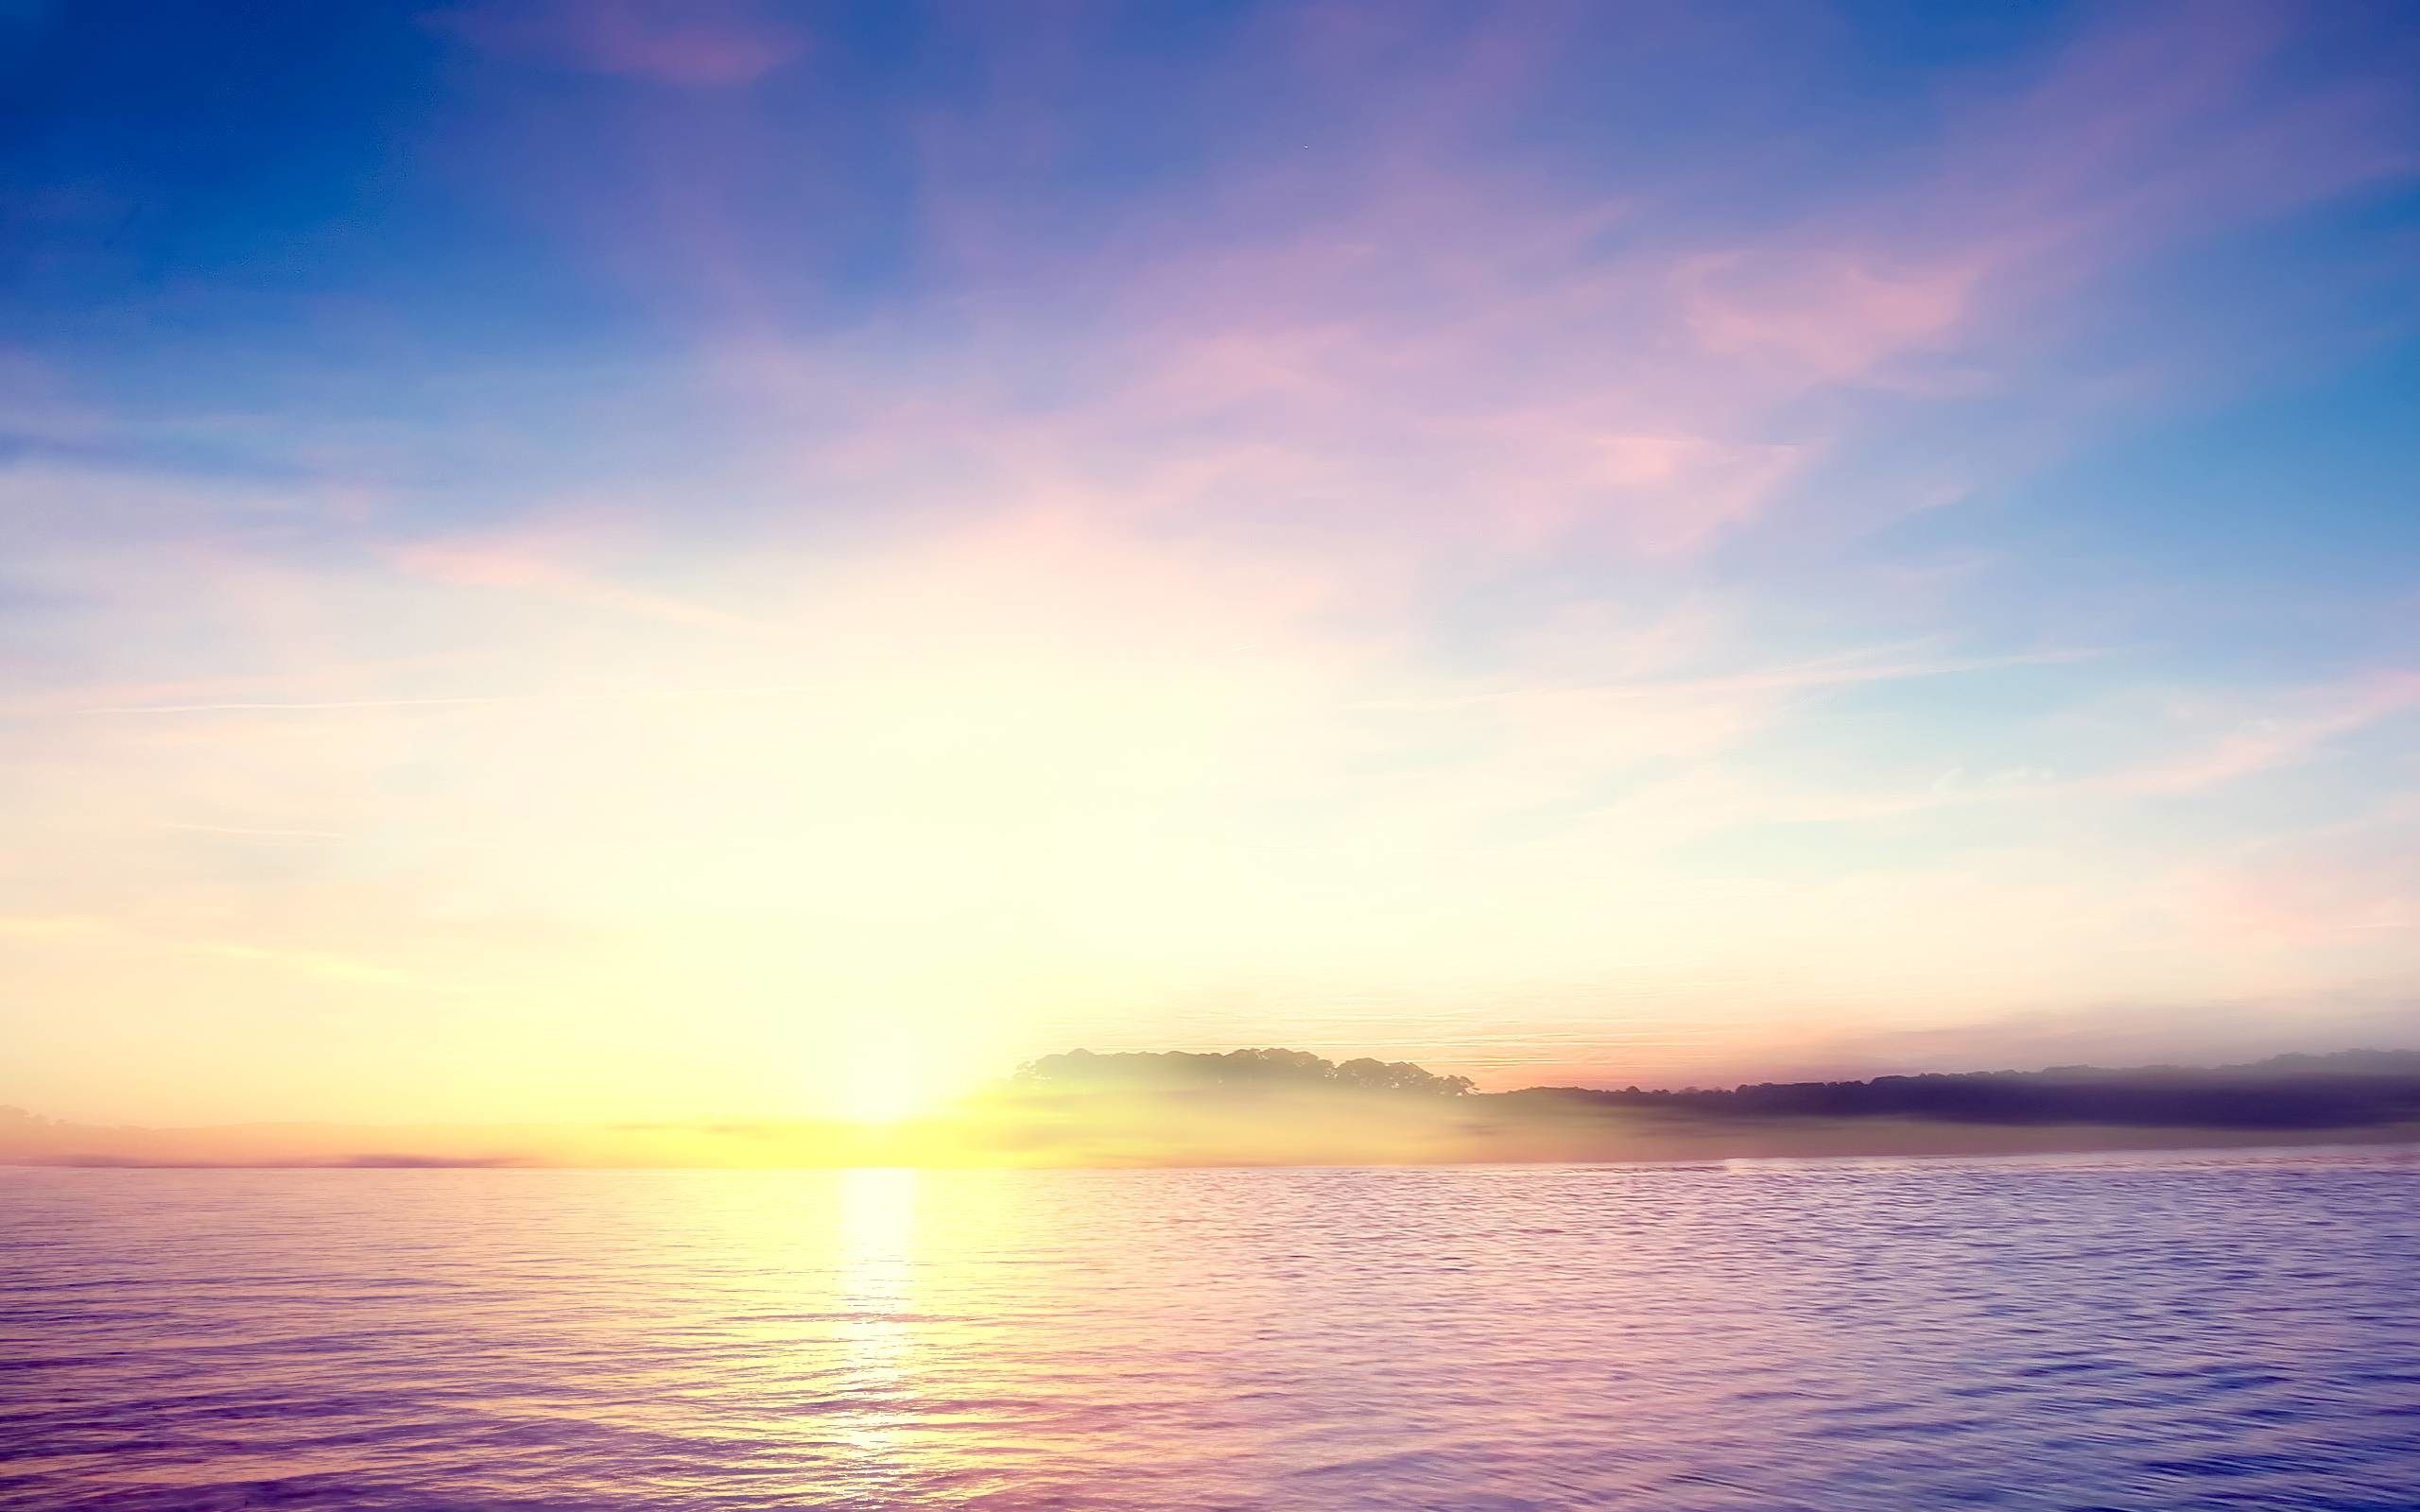 Tropical Island Sunset Wallpapers | HD Wallpapers